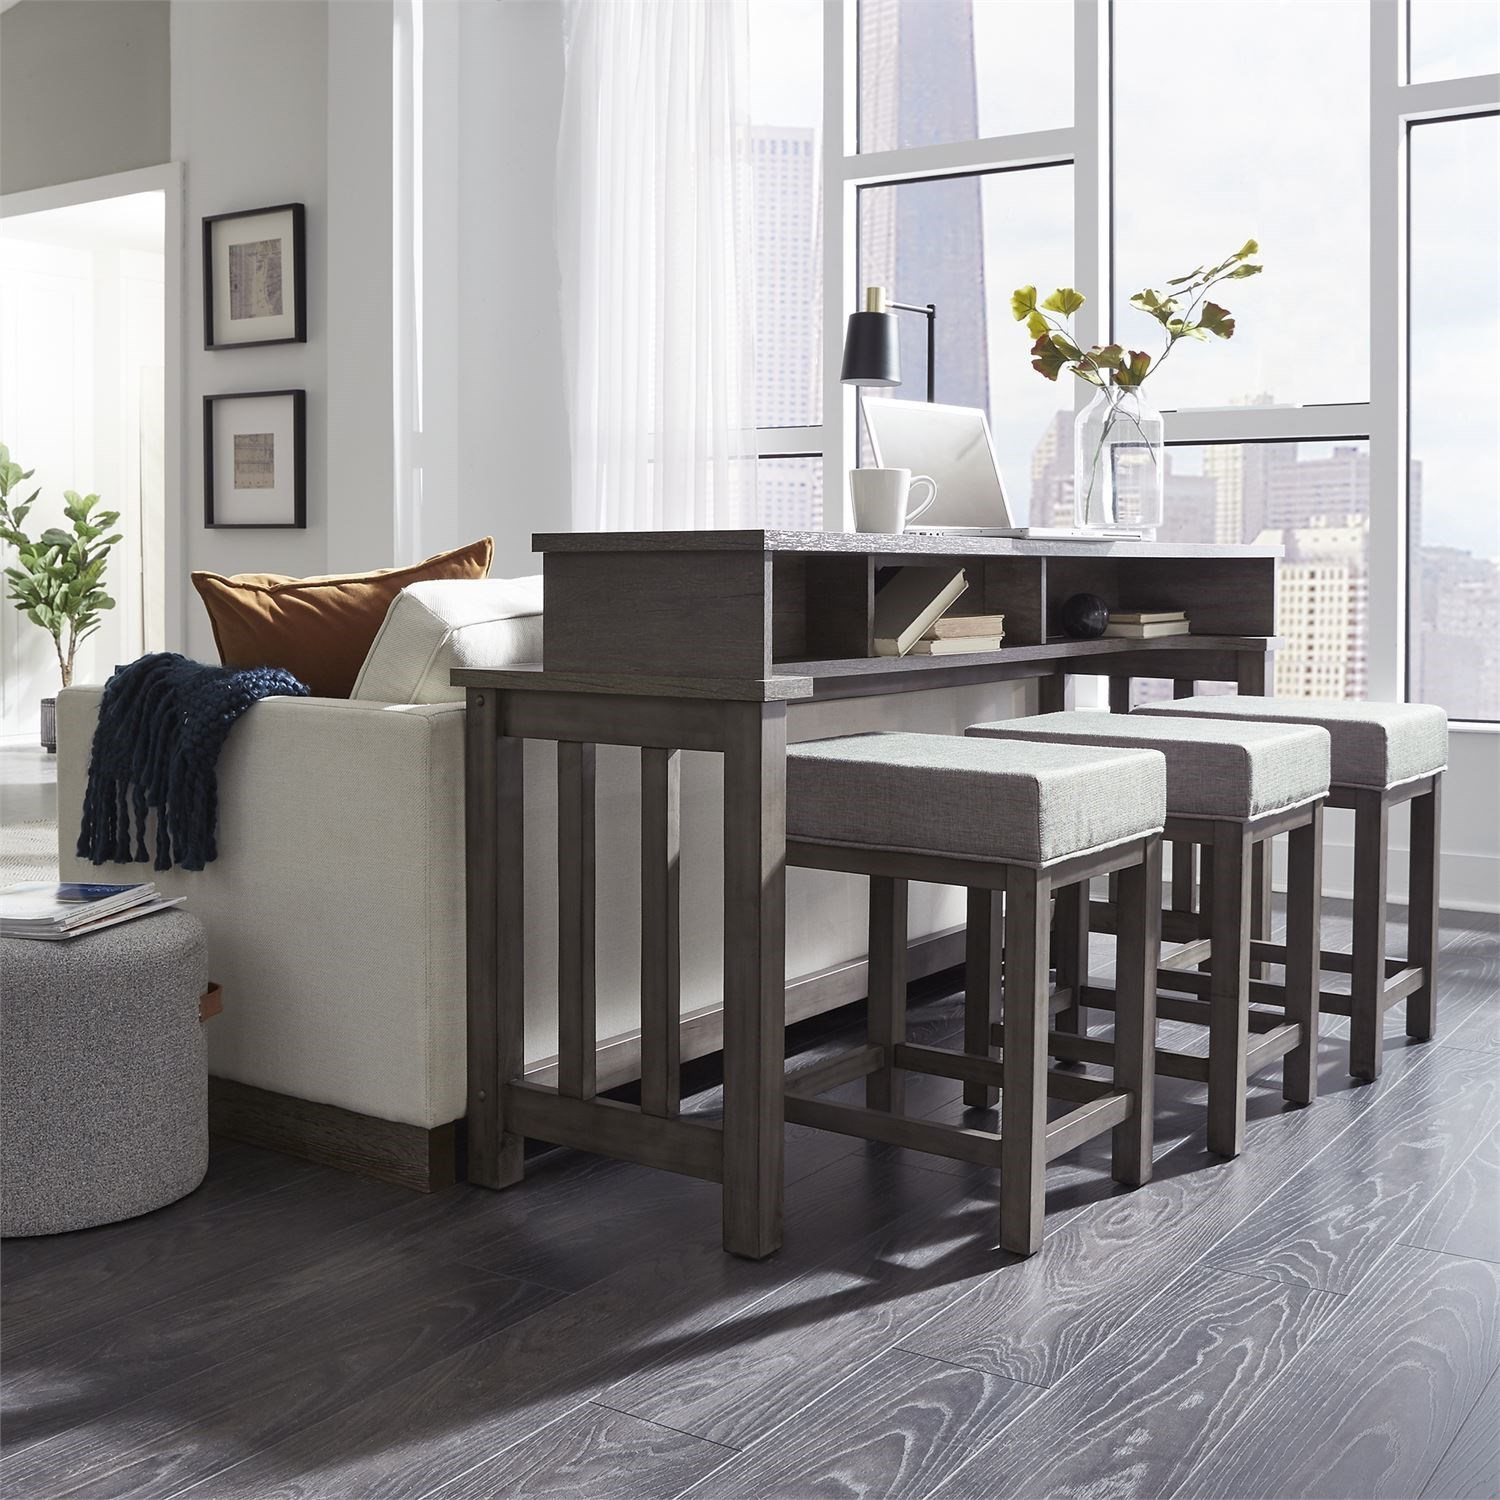 Tanners Creek 4 Piece Occasional Group by Liberty Furniture at Dream Home Interiors